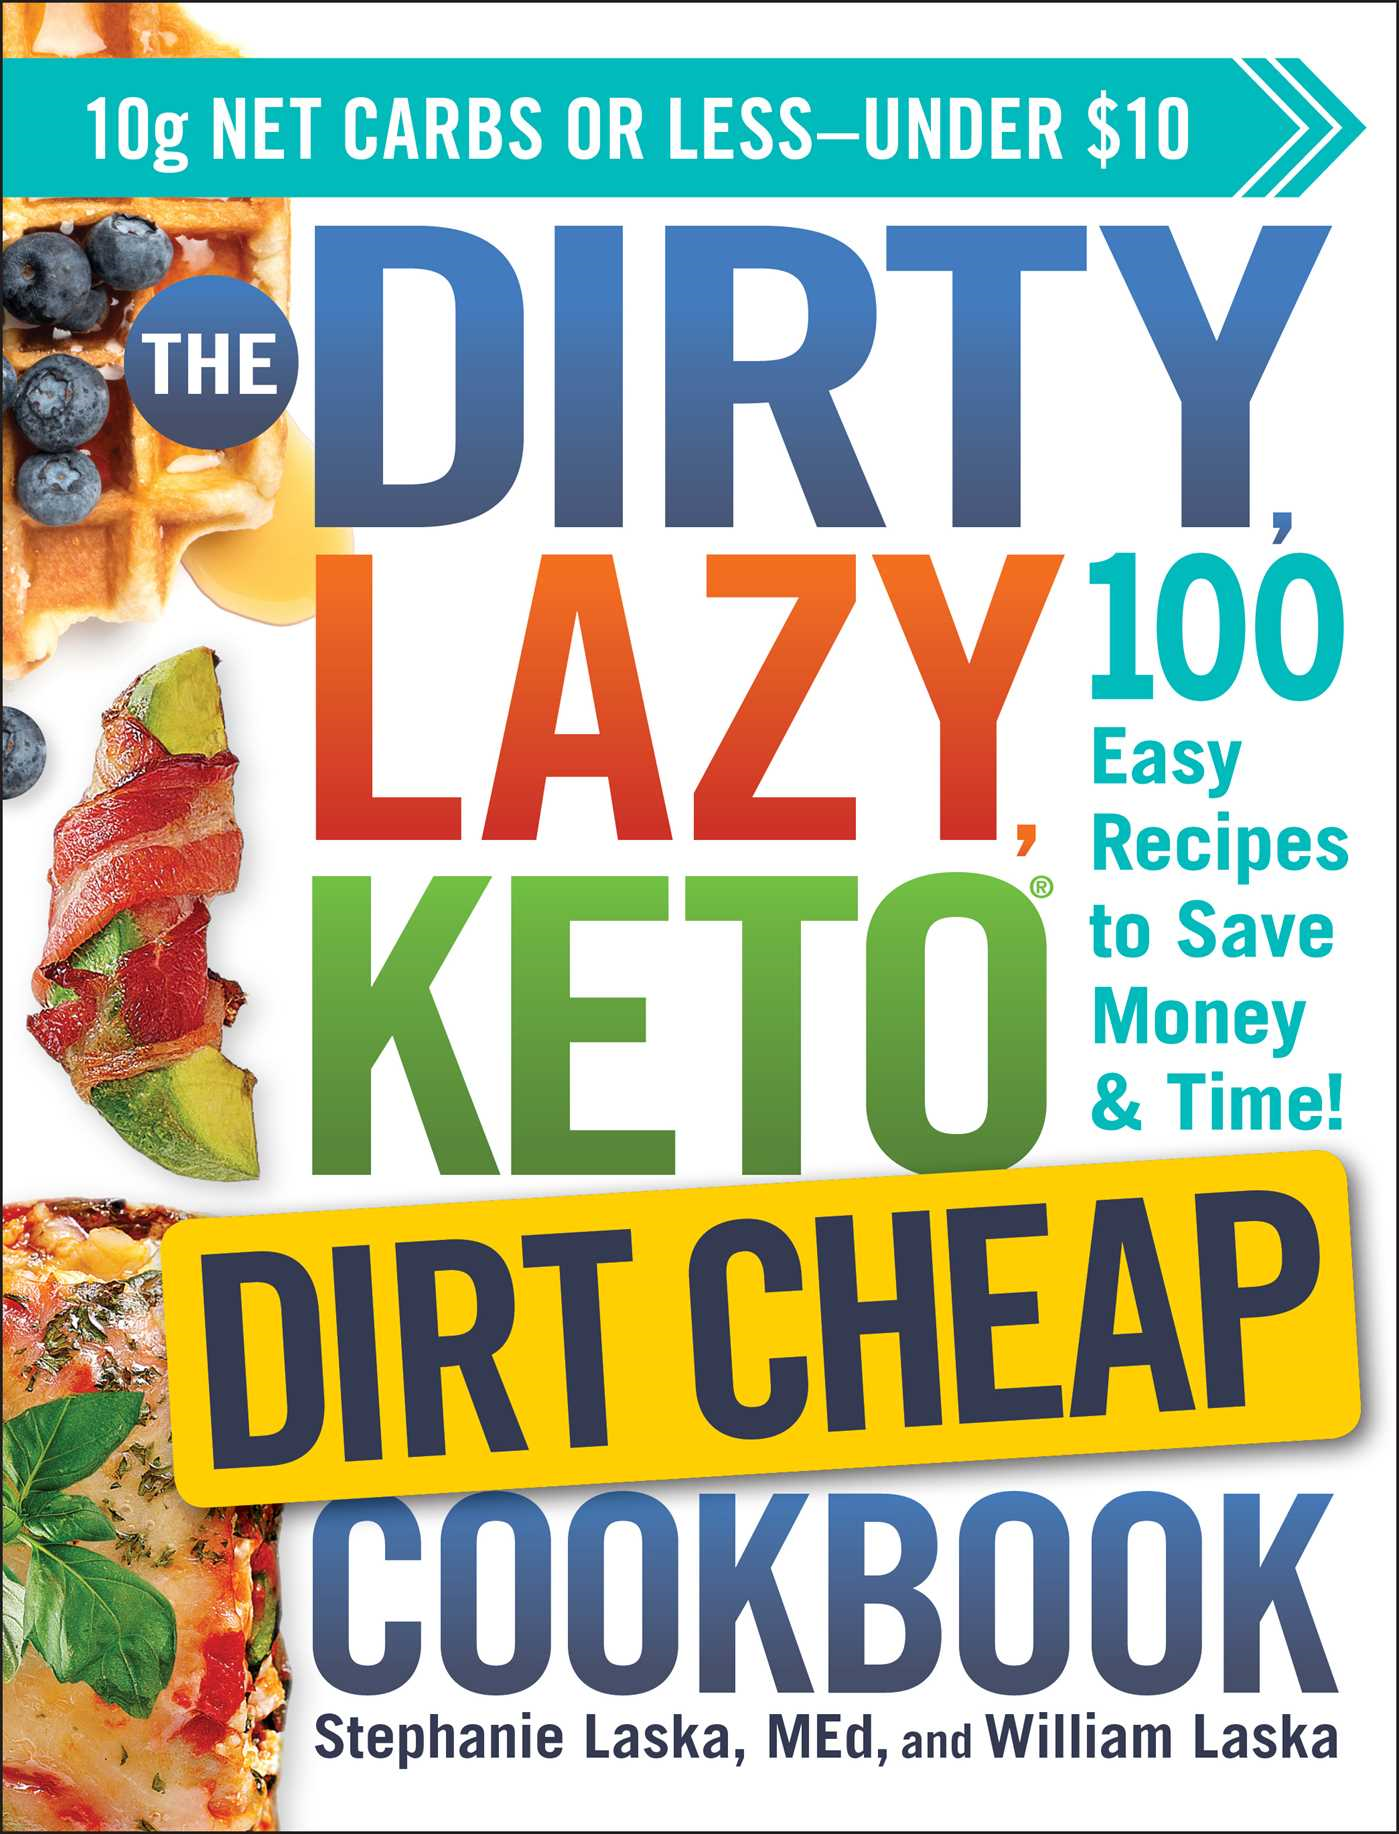 The DIRTY, LAZY, KETO Dirt Cheap Cookbook